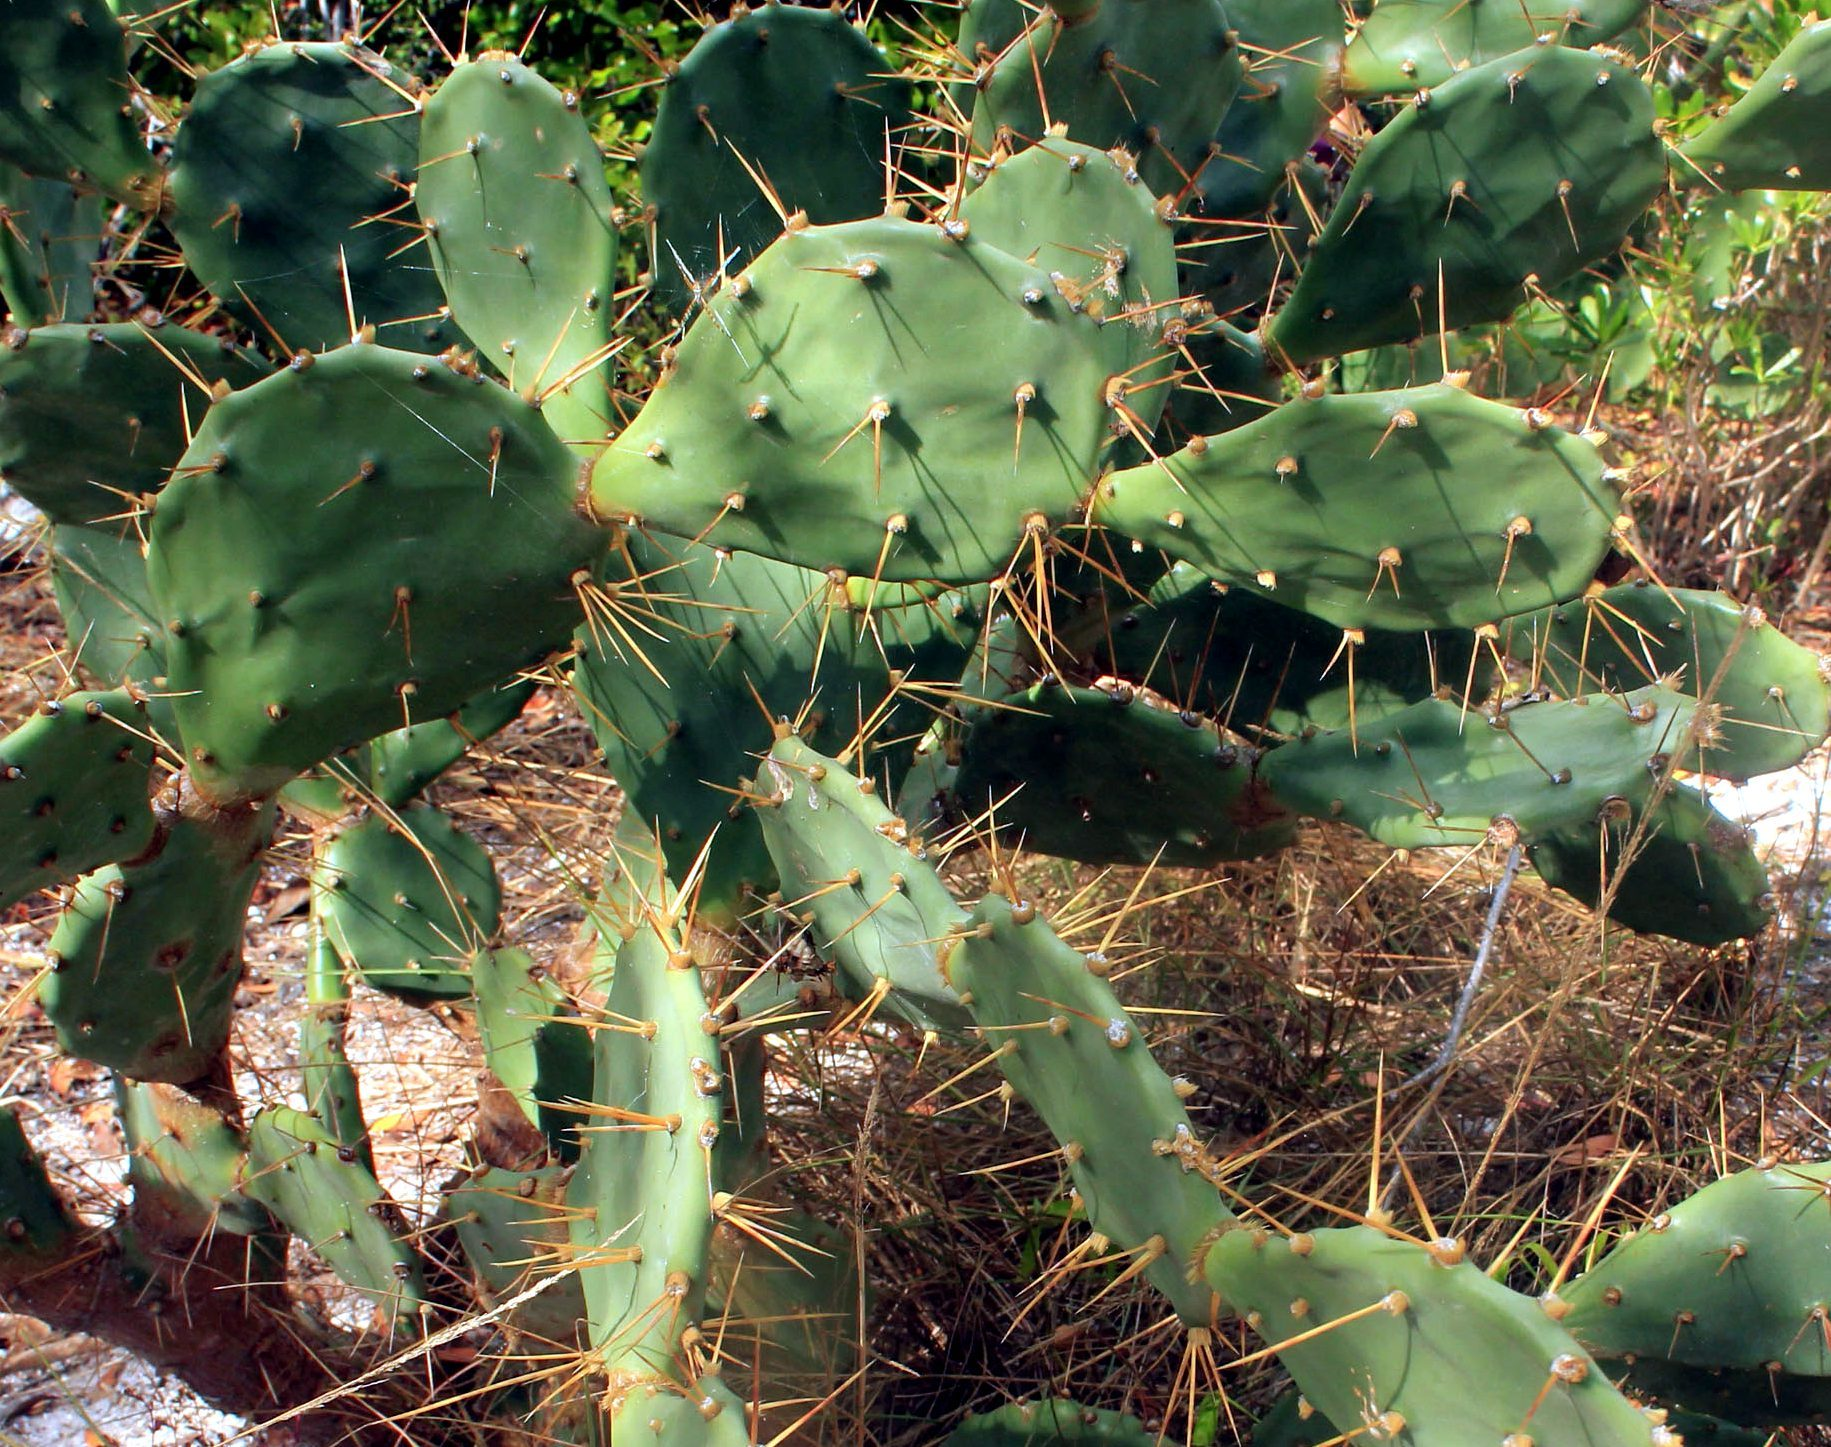 Prickly Pear Cactus Pictures Public Domain